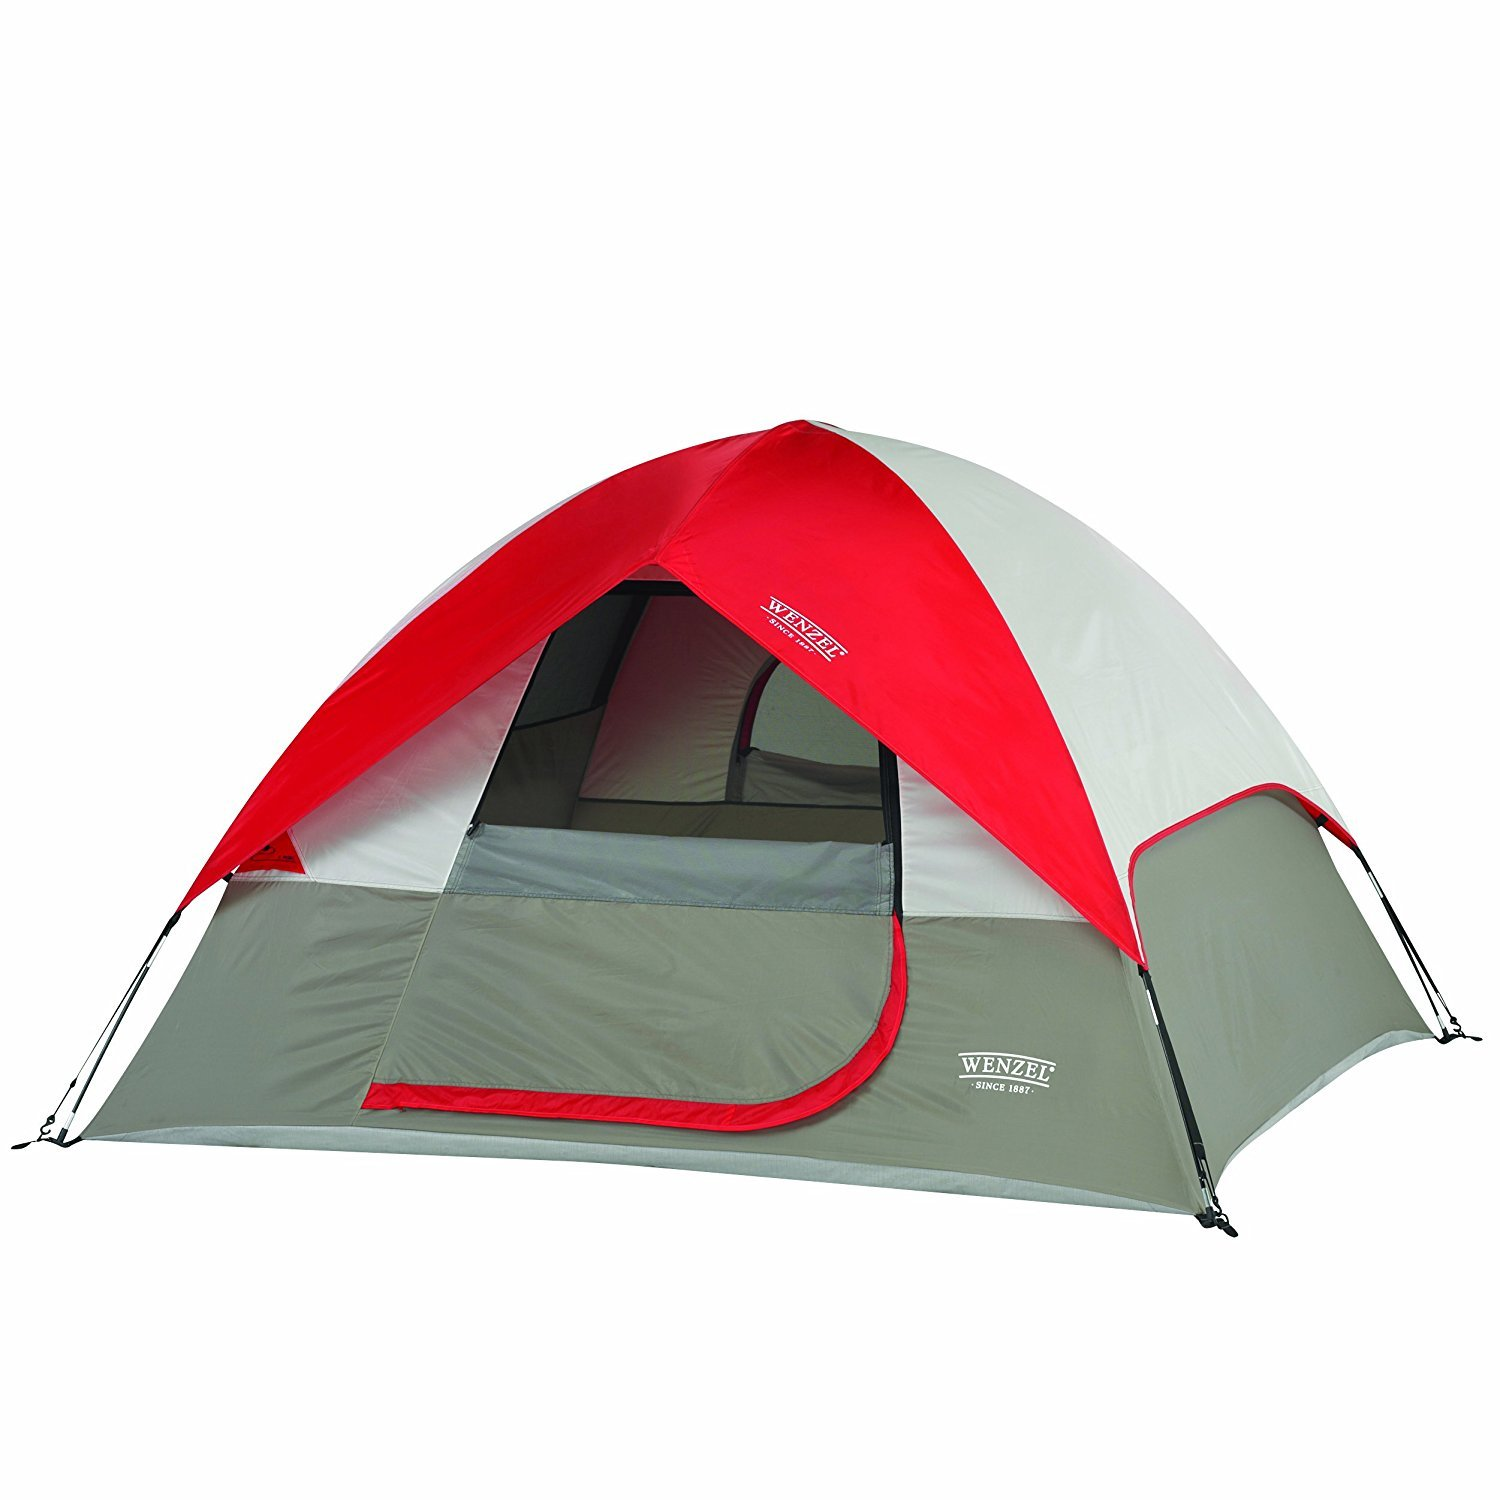 Wenzel Ridgeline Dome Tent 3 Person 7ft x 7ft x 50 In. [並行輸入品]   B07148WT38